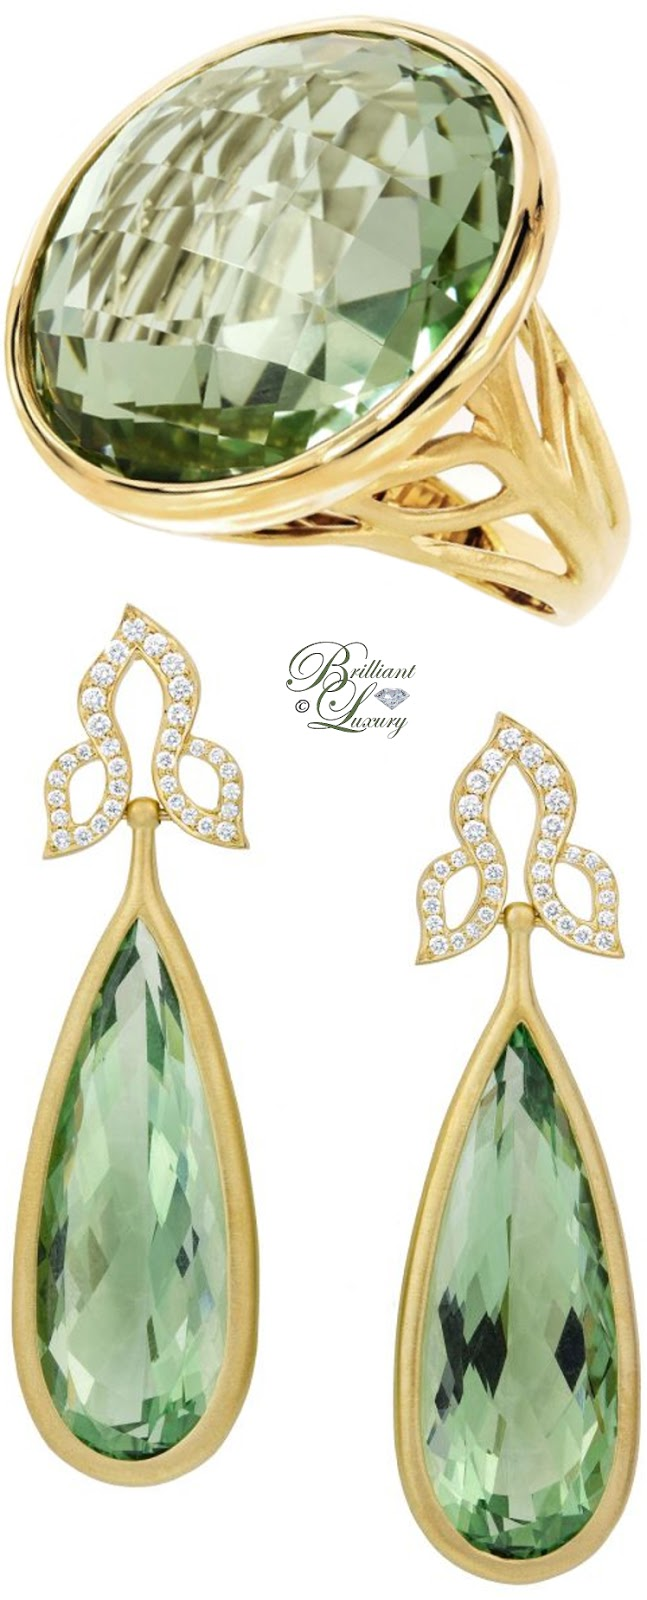 Brilliant Luxury ♦ Carelle Green Quartz Ring & Earrings